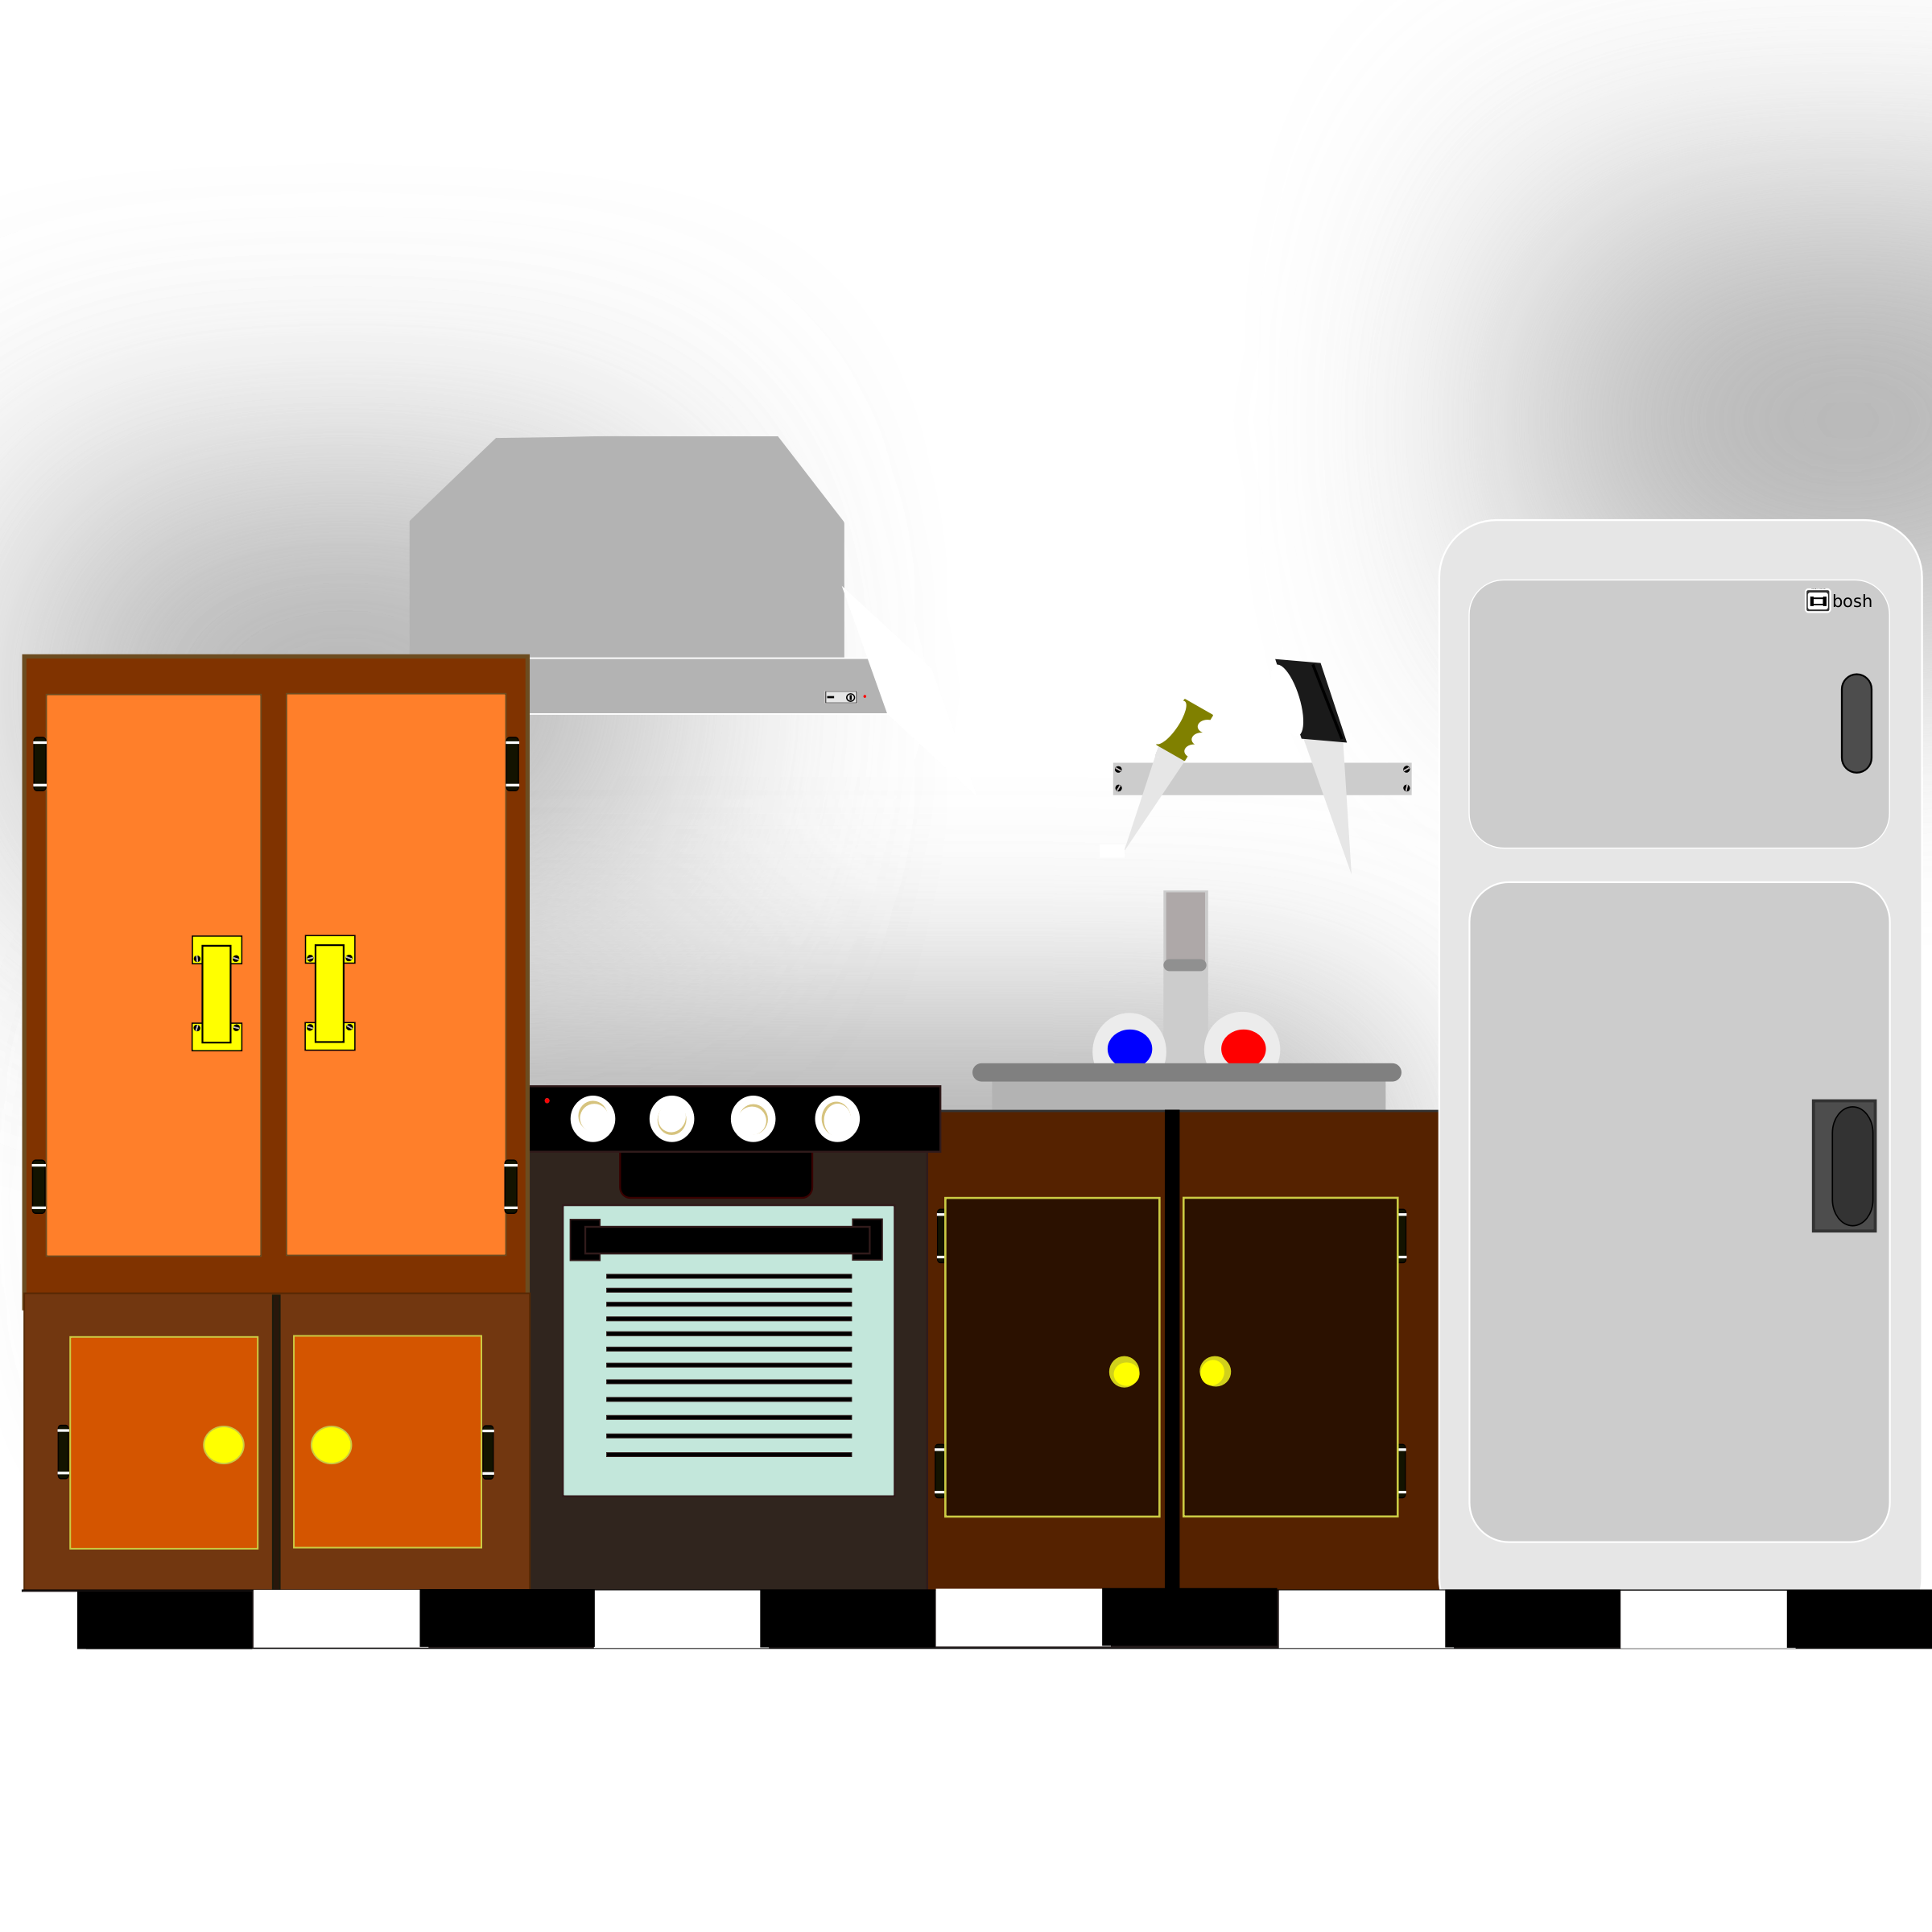 Dishwasher clipart powerpoint. Kitchen renovation graphics illustrations